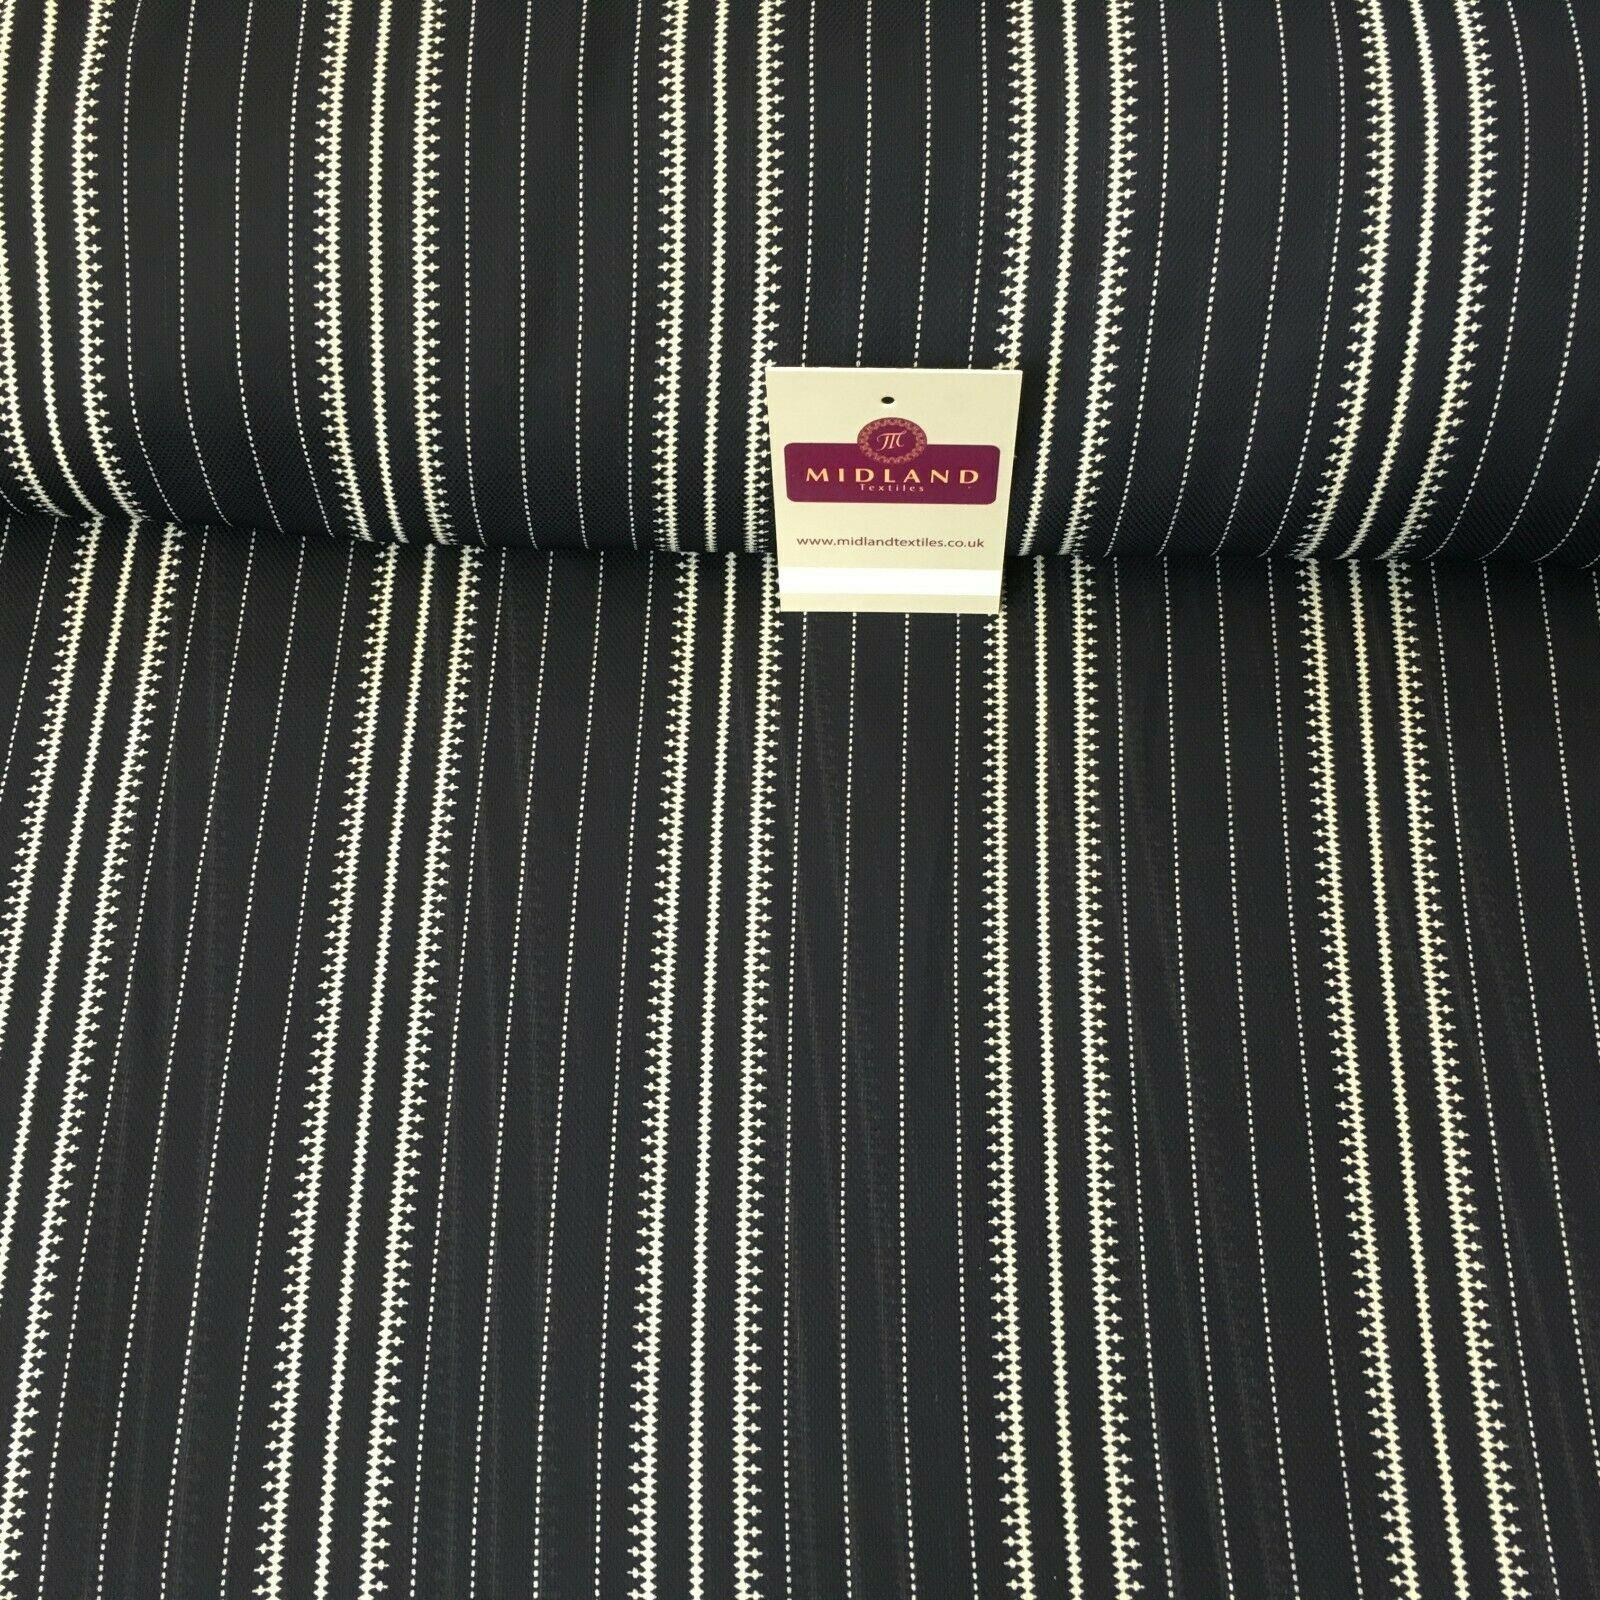 Navy Striped Printed soft Georgette twist voile Dress Fabric 147 Cm MK1185-13